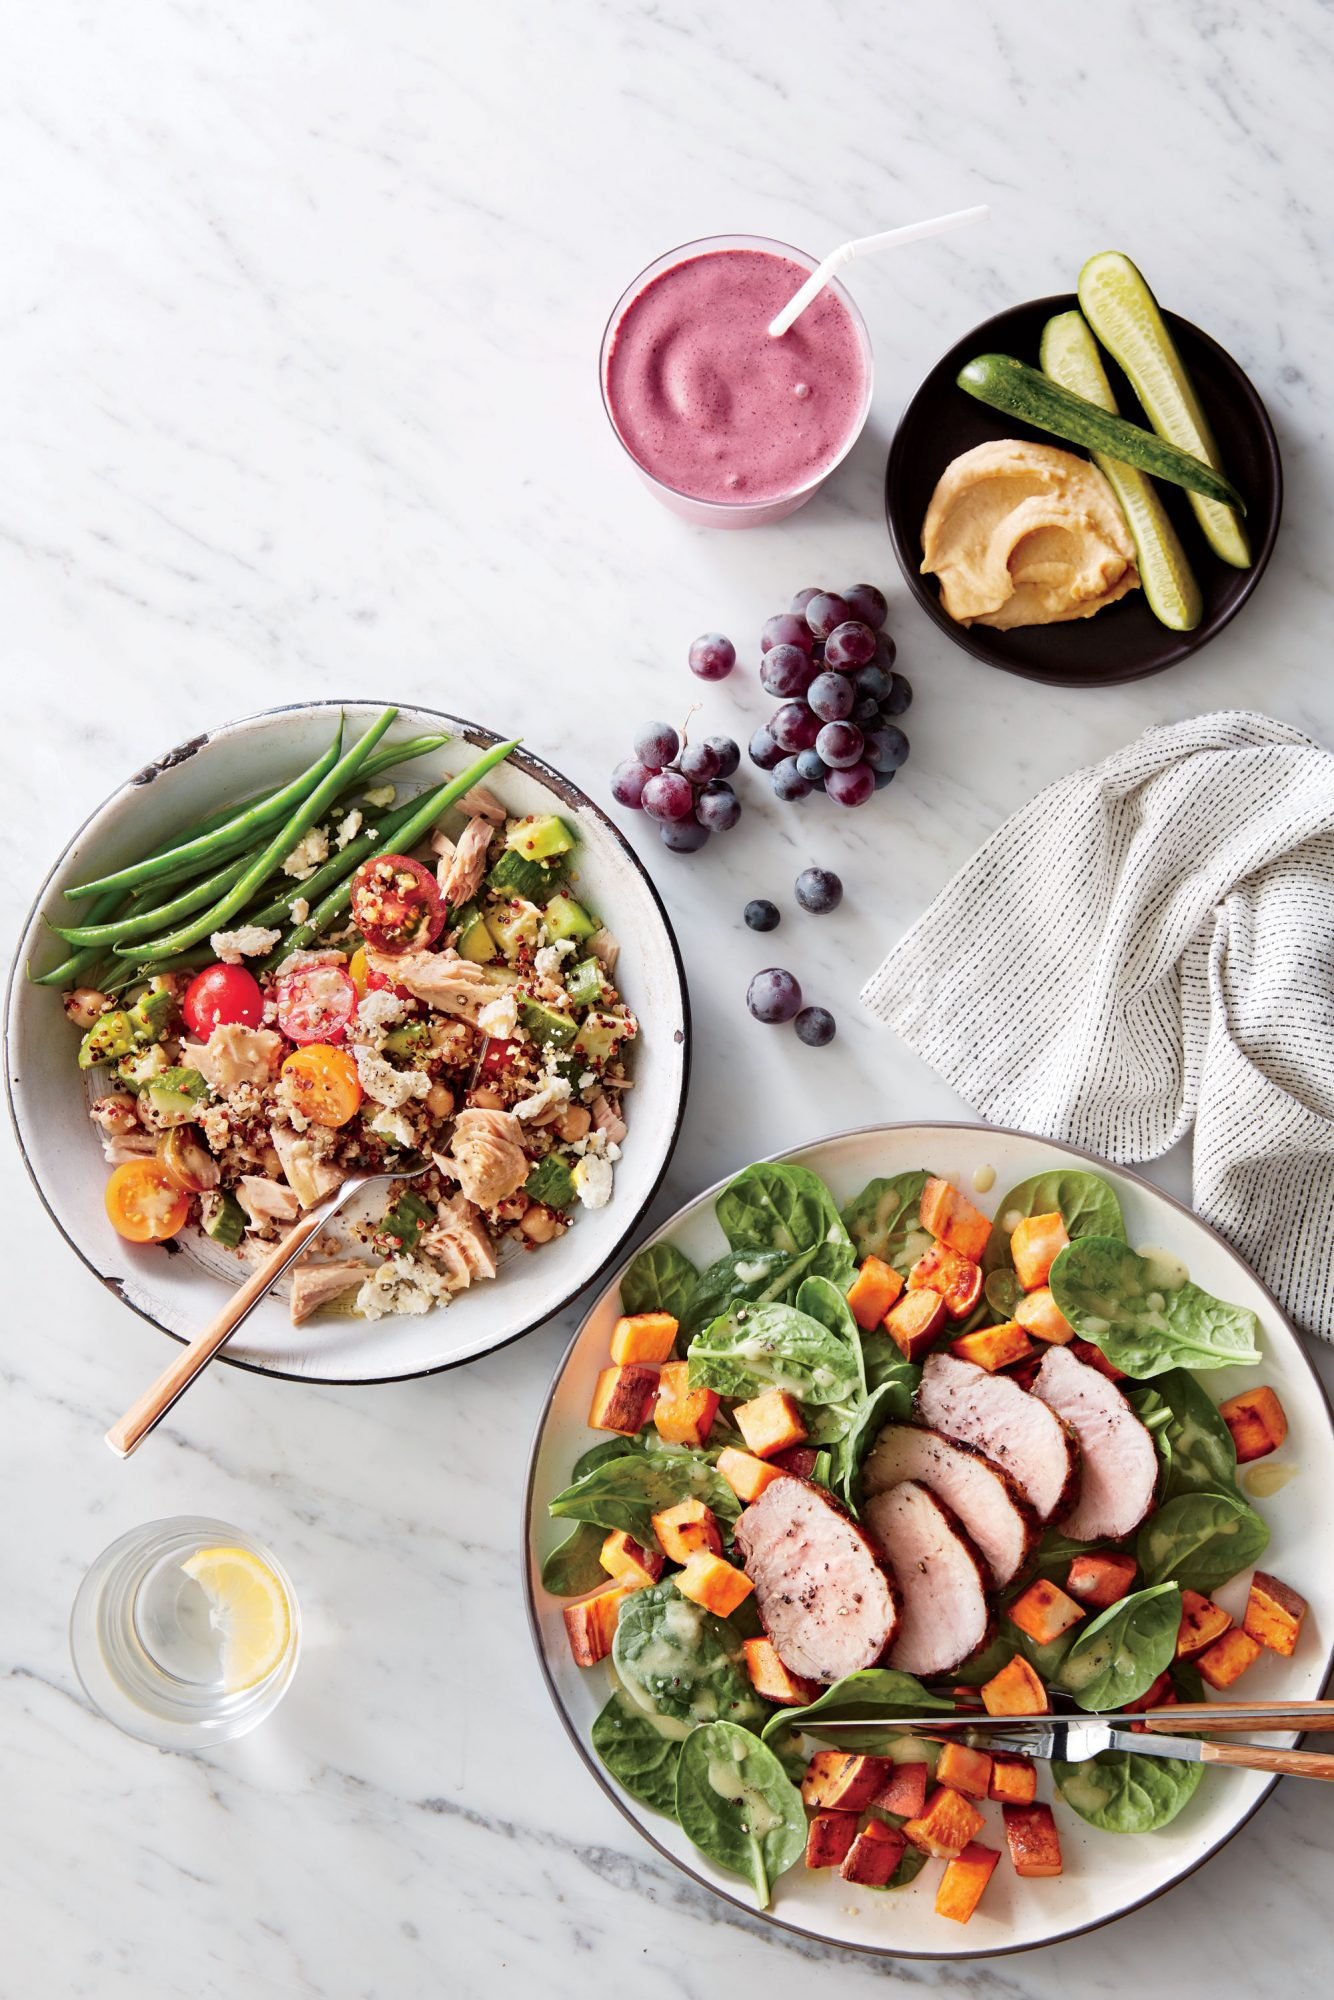 Spinach Salad with Roasted Sweet Potatoes